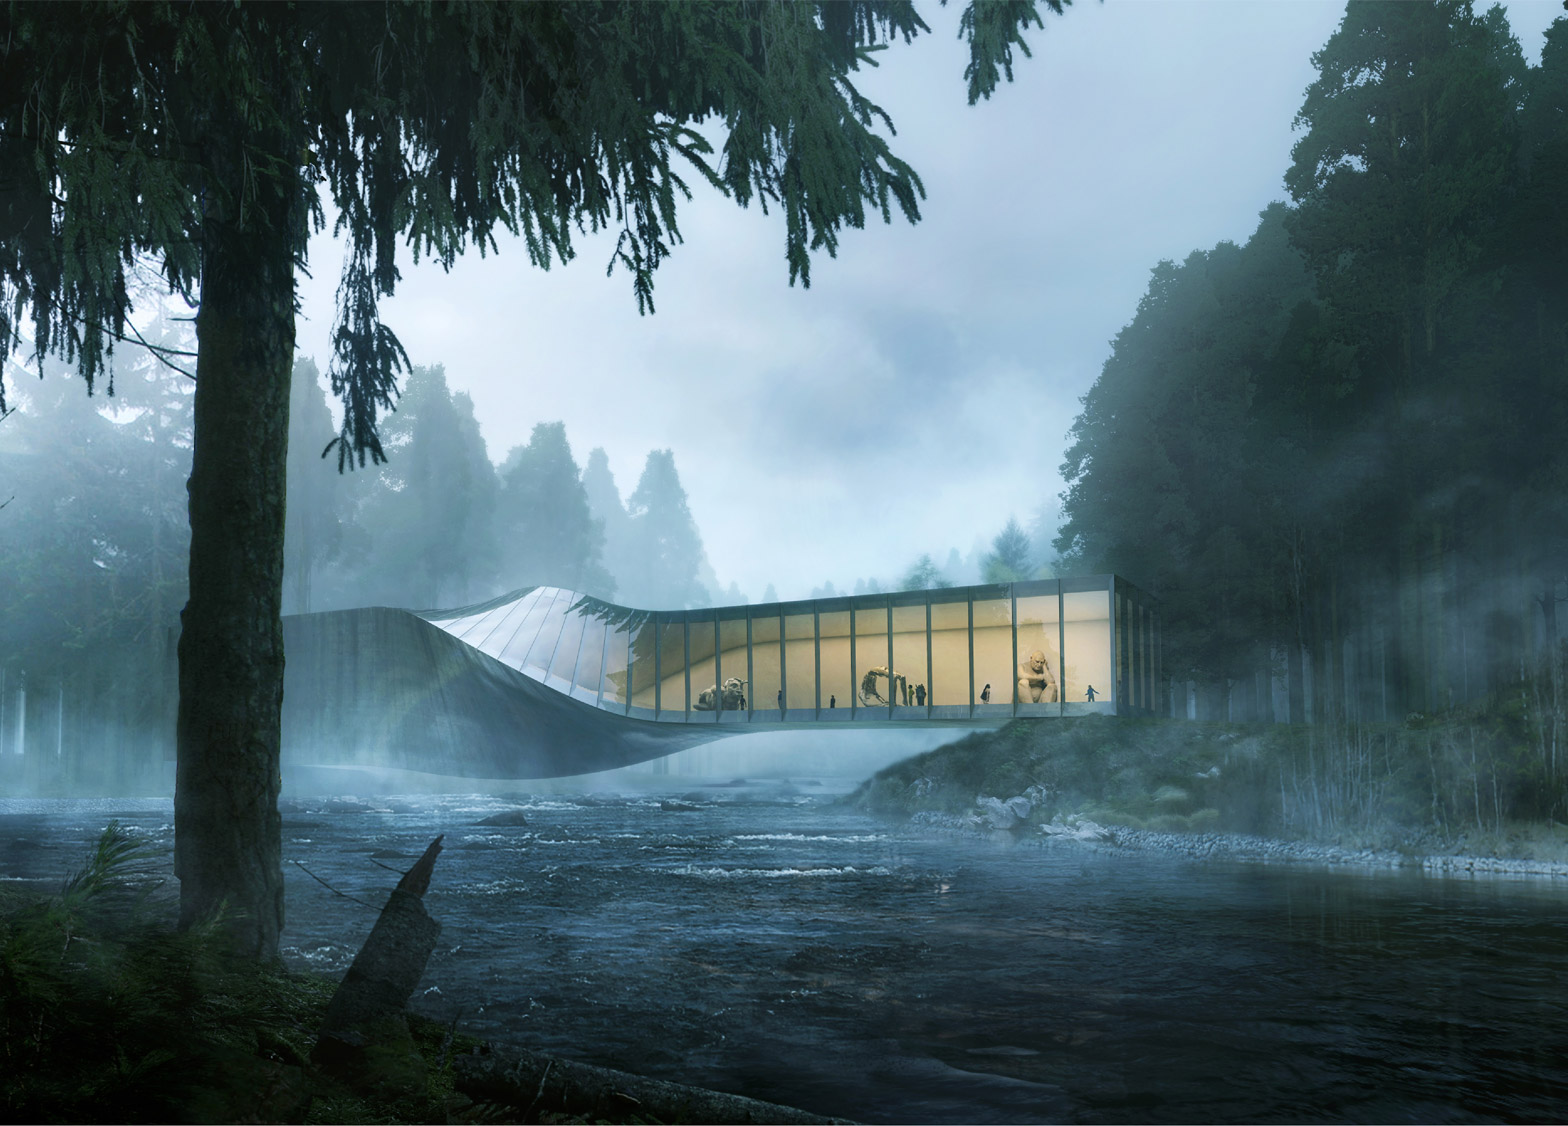 Bjarke Ingels Bridges Art and Nature with a New Exhibition Space - SURFACE